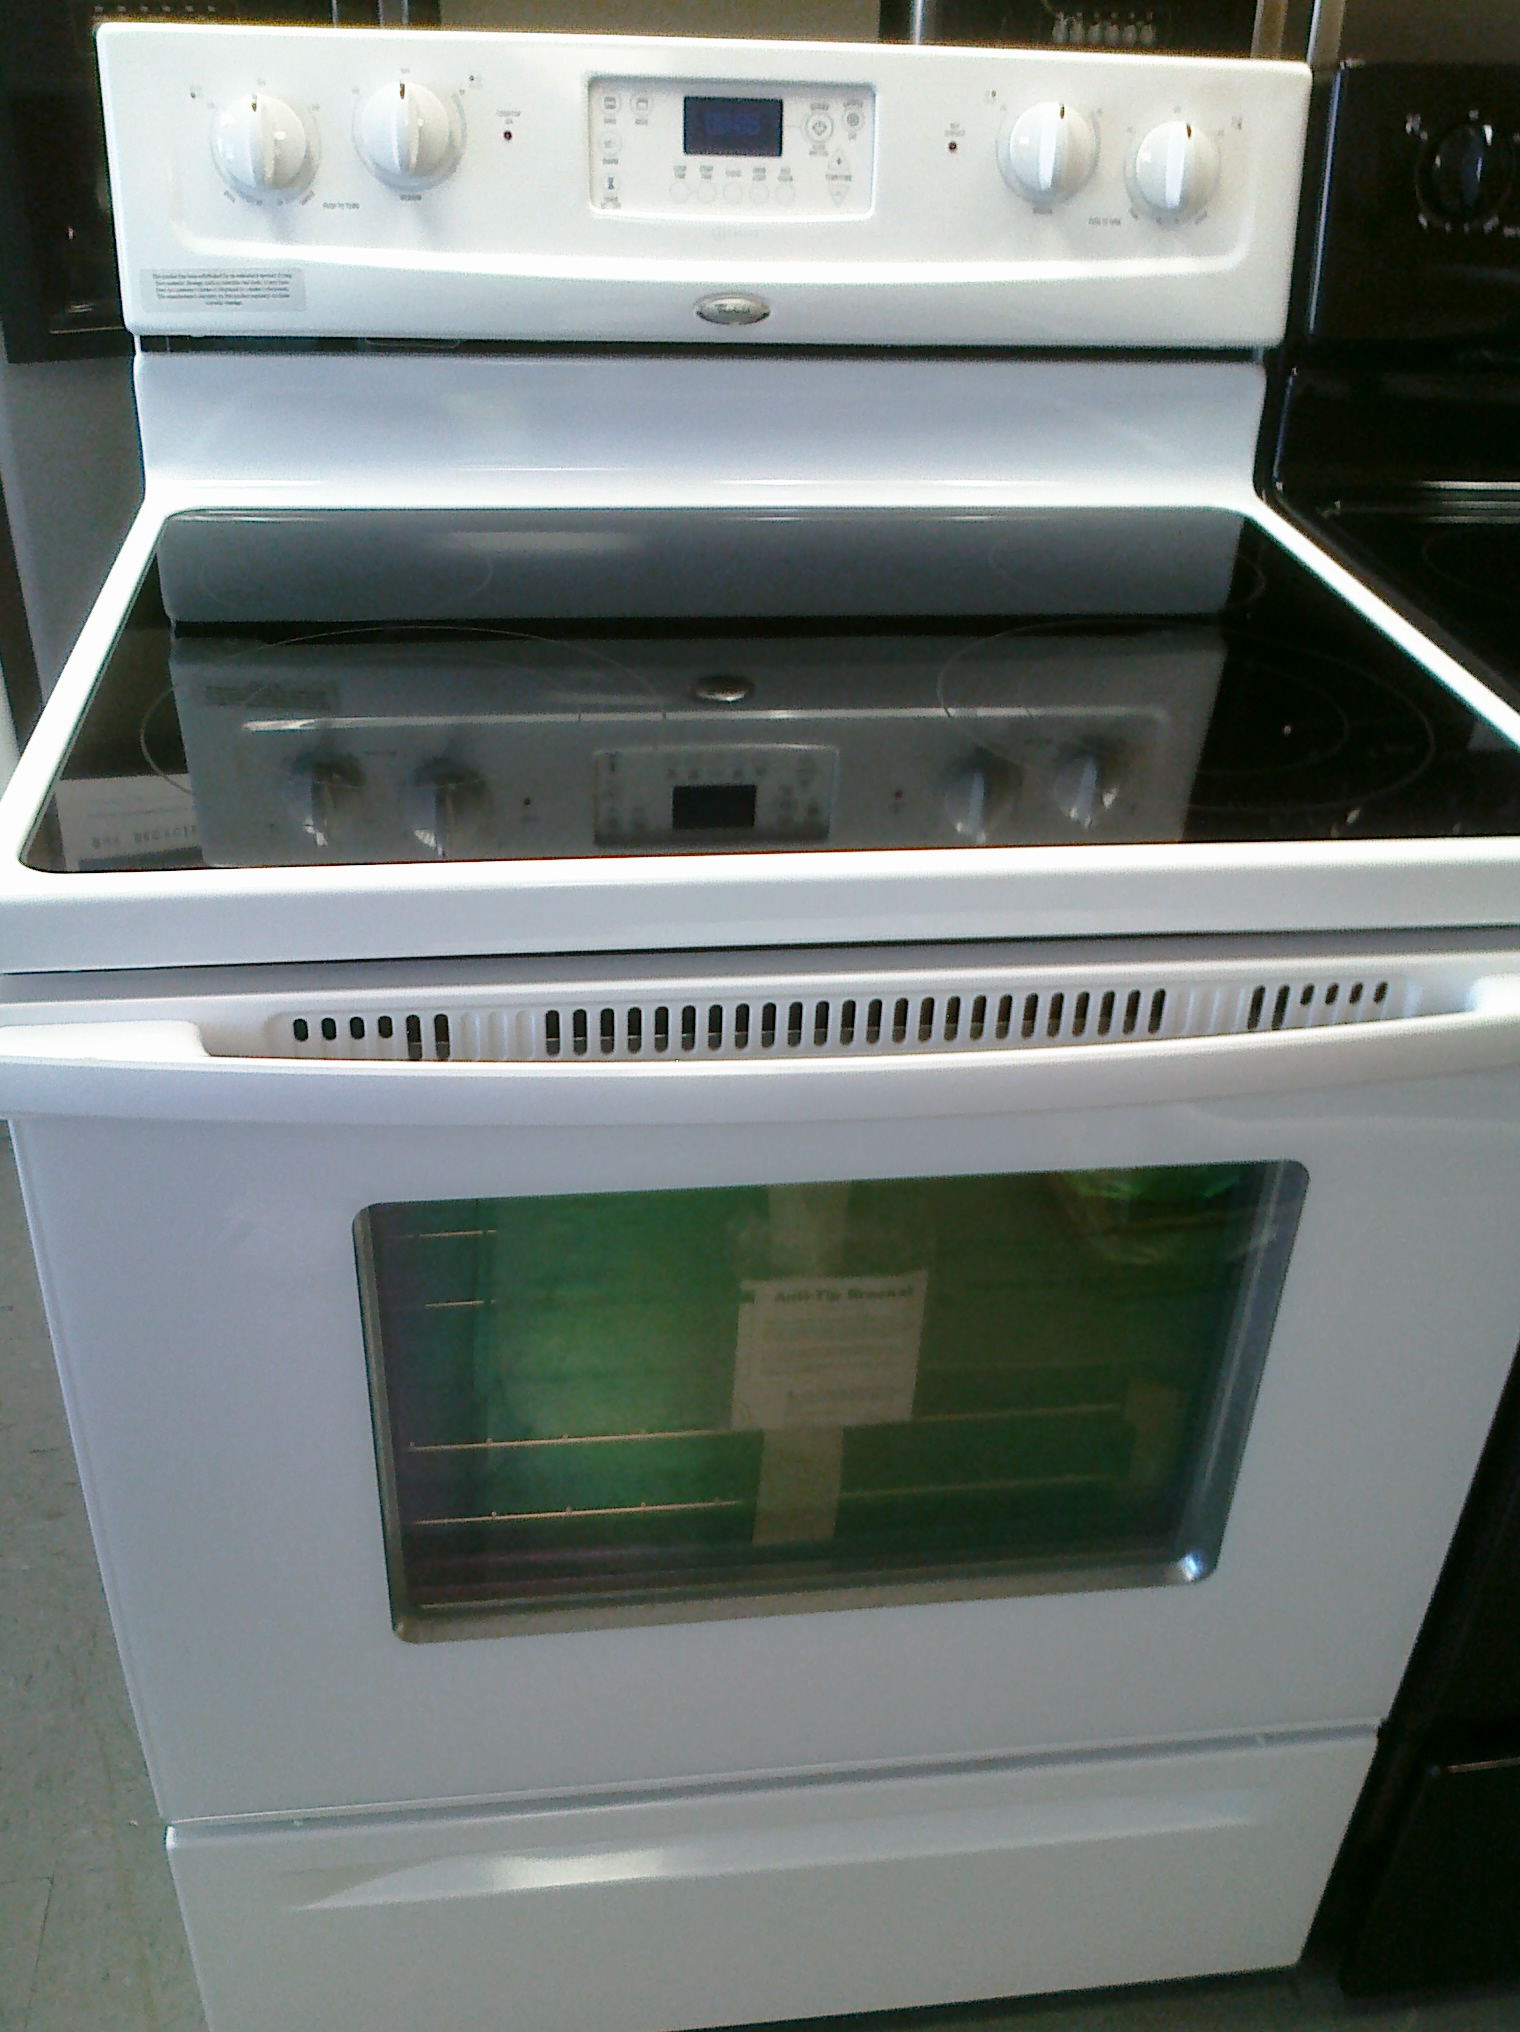 (9) Whirlpool WFE364LVQ 30 inch Smooth-Top Electric Self-Clean Stove, White